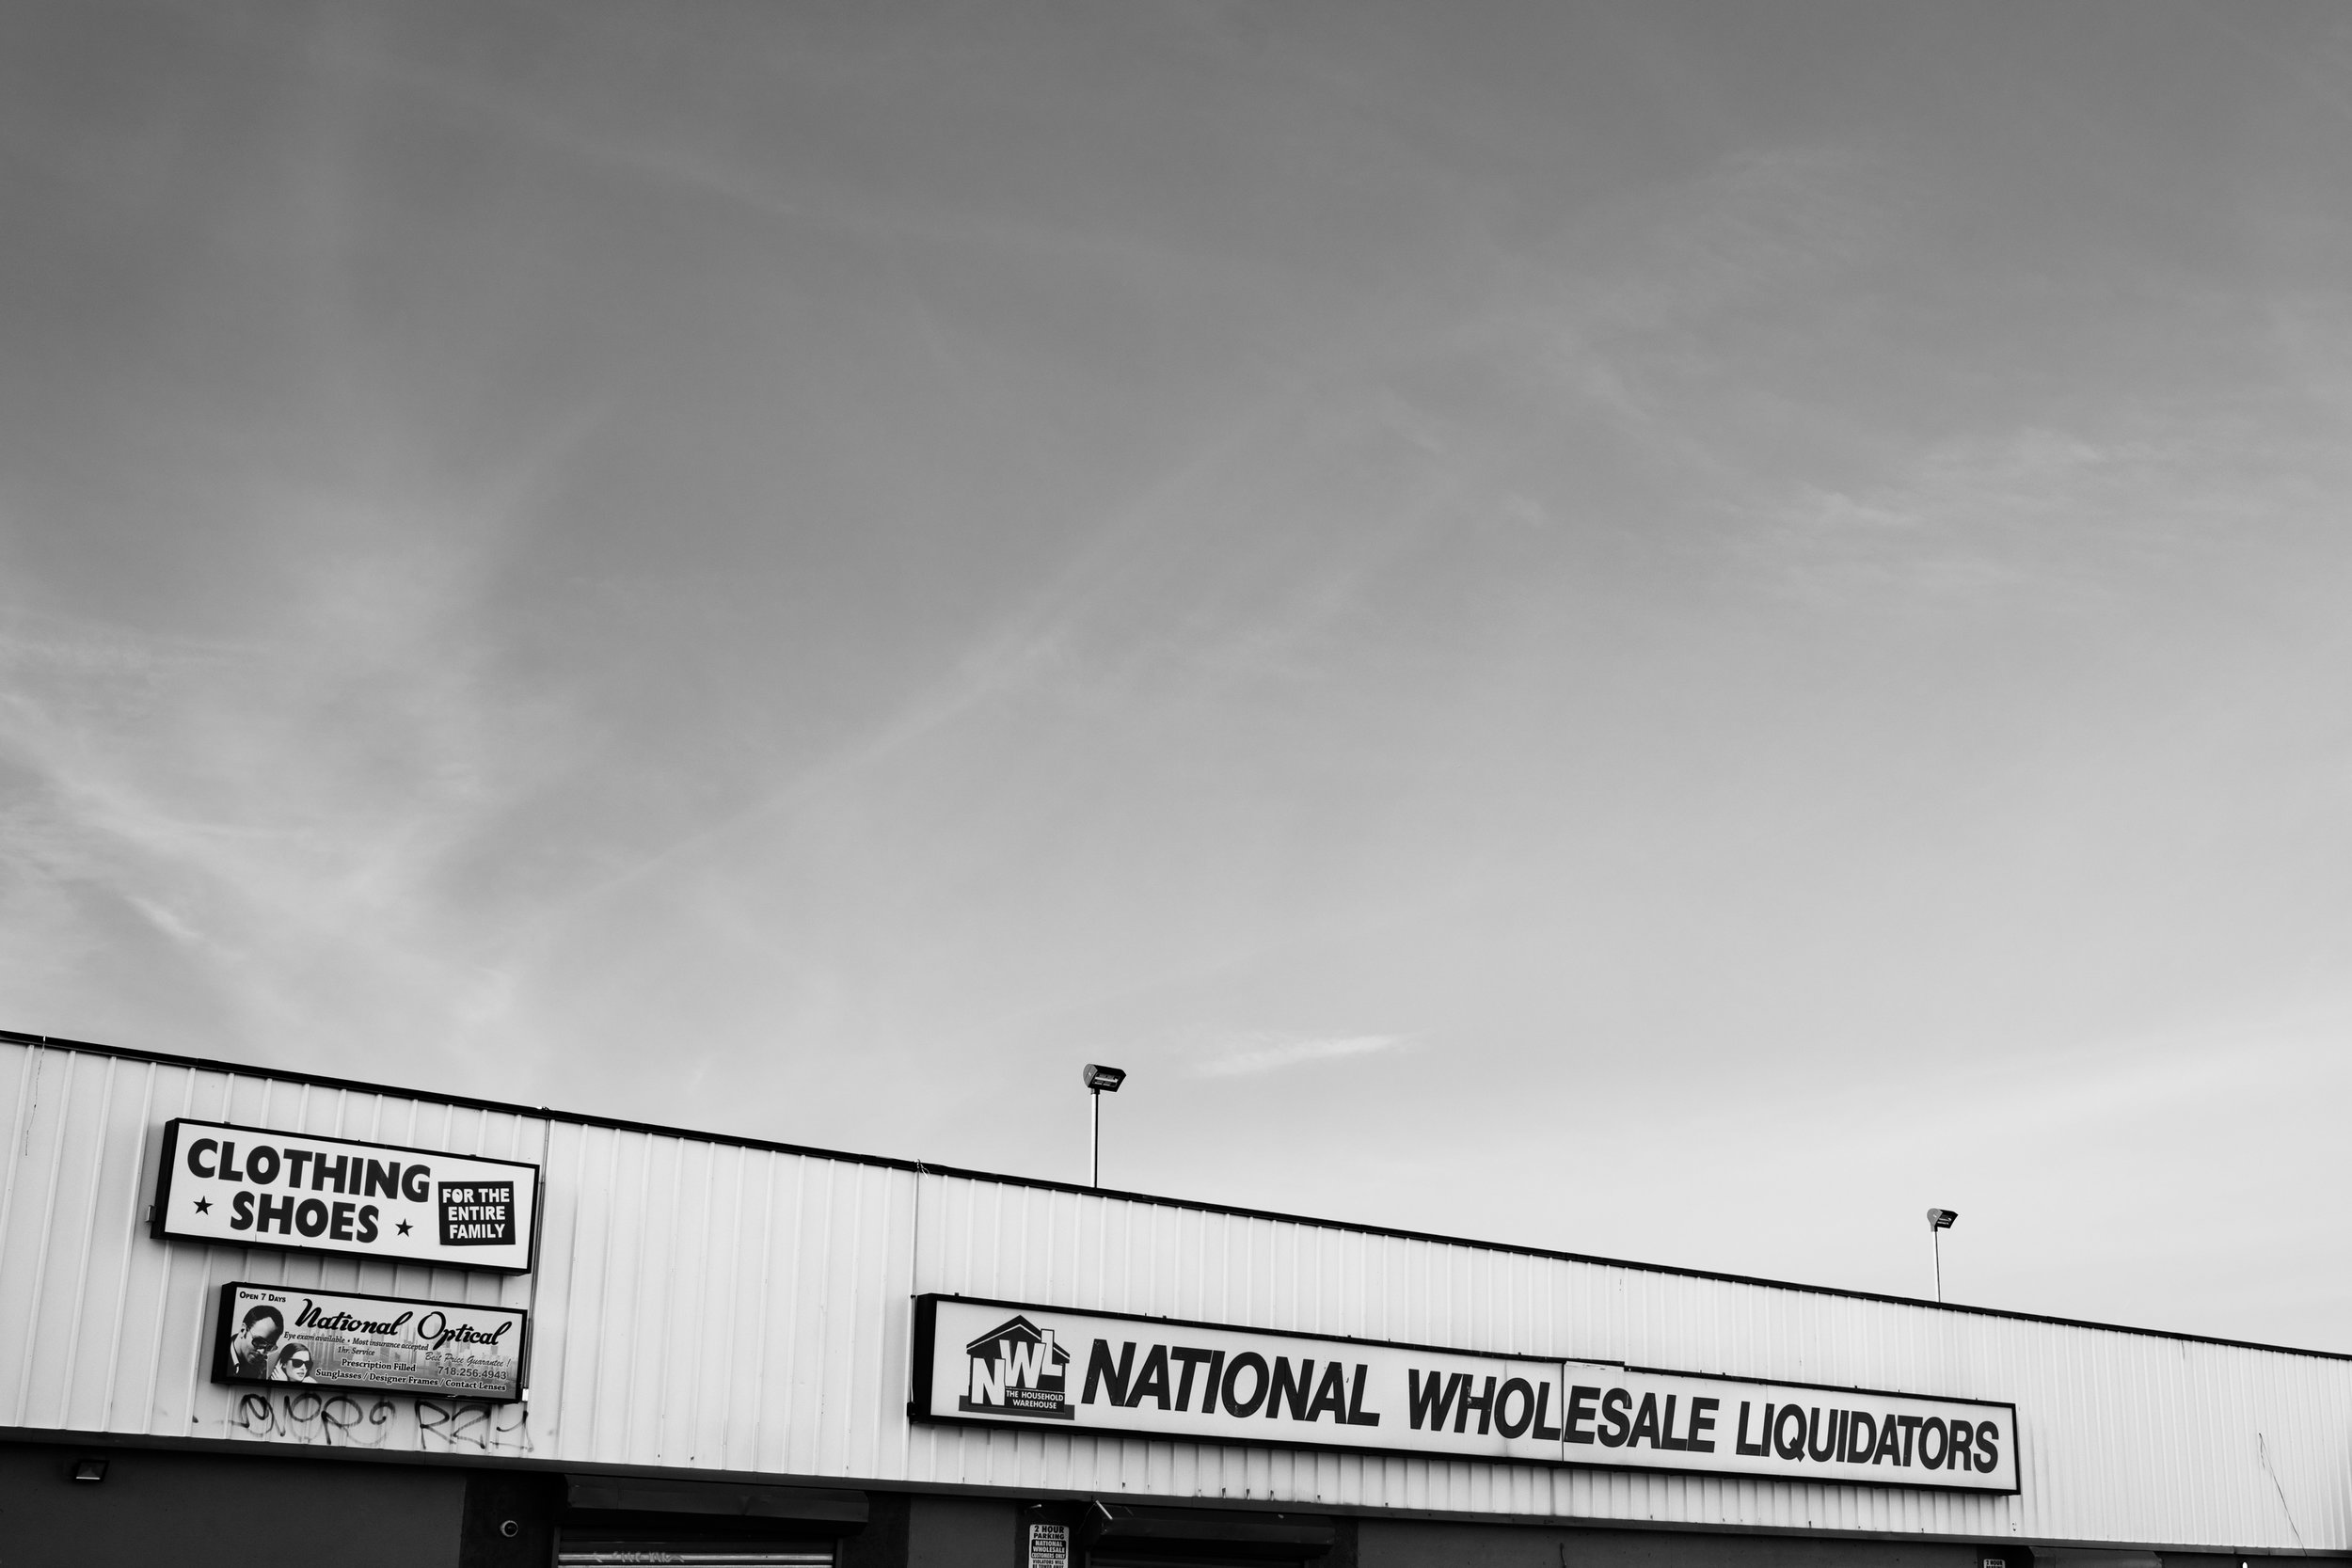 NationalWholesaleLiquidators_2563merged.jpg